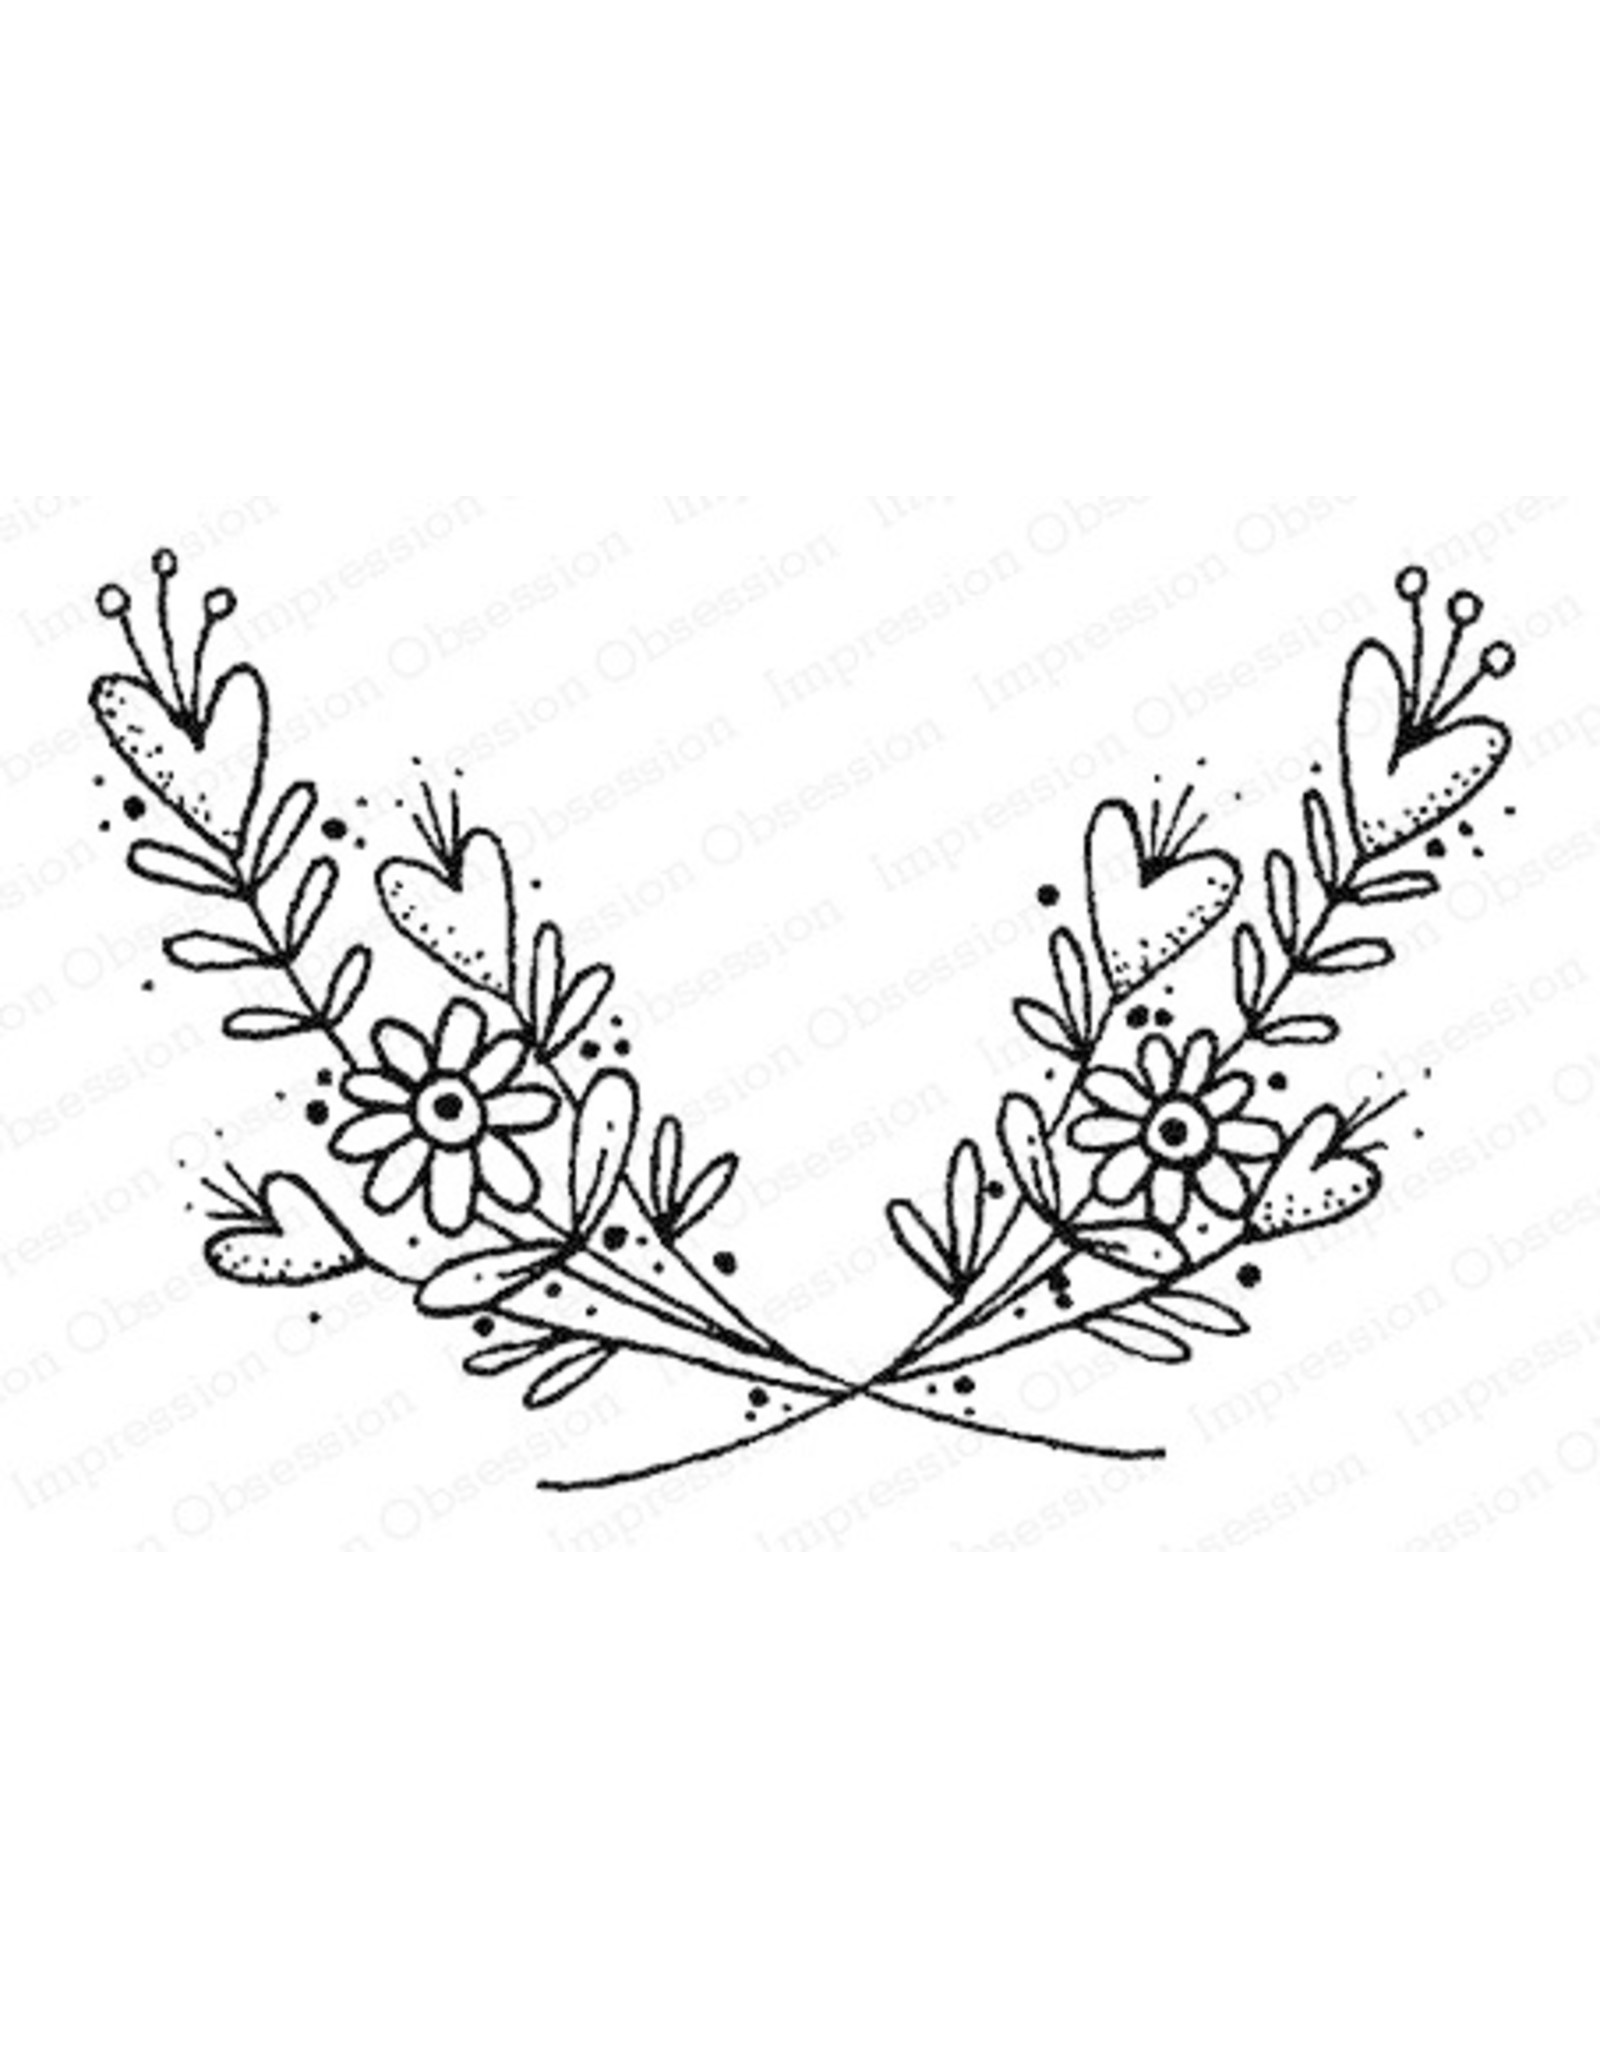 Impression Obsession Floral Swag - Cling Stamp